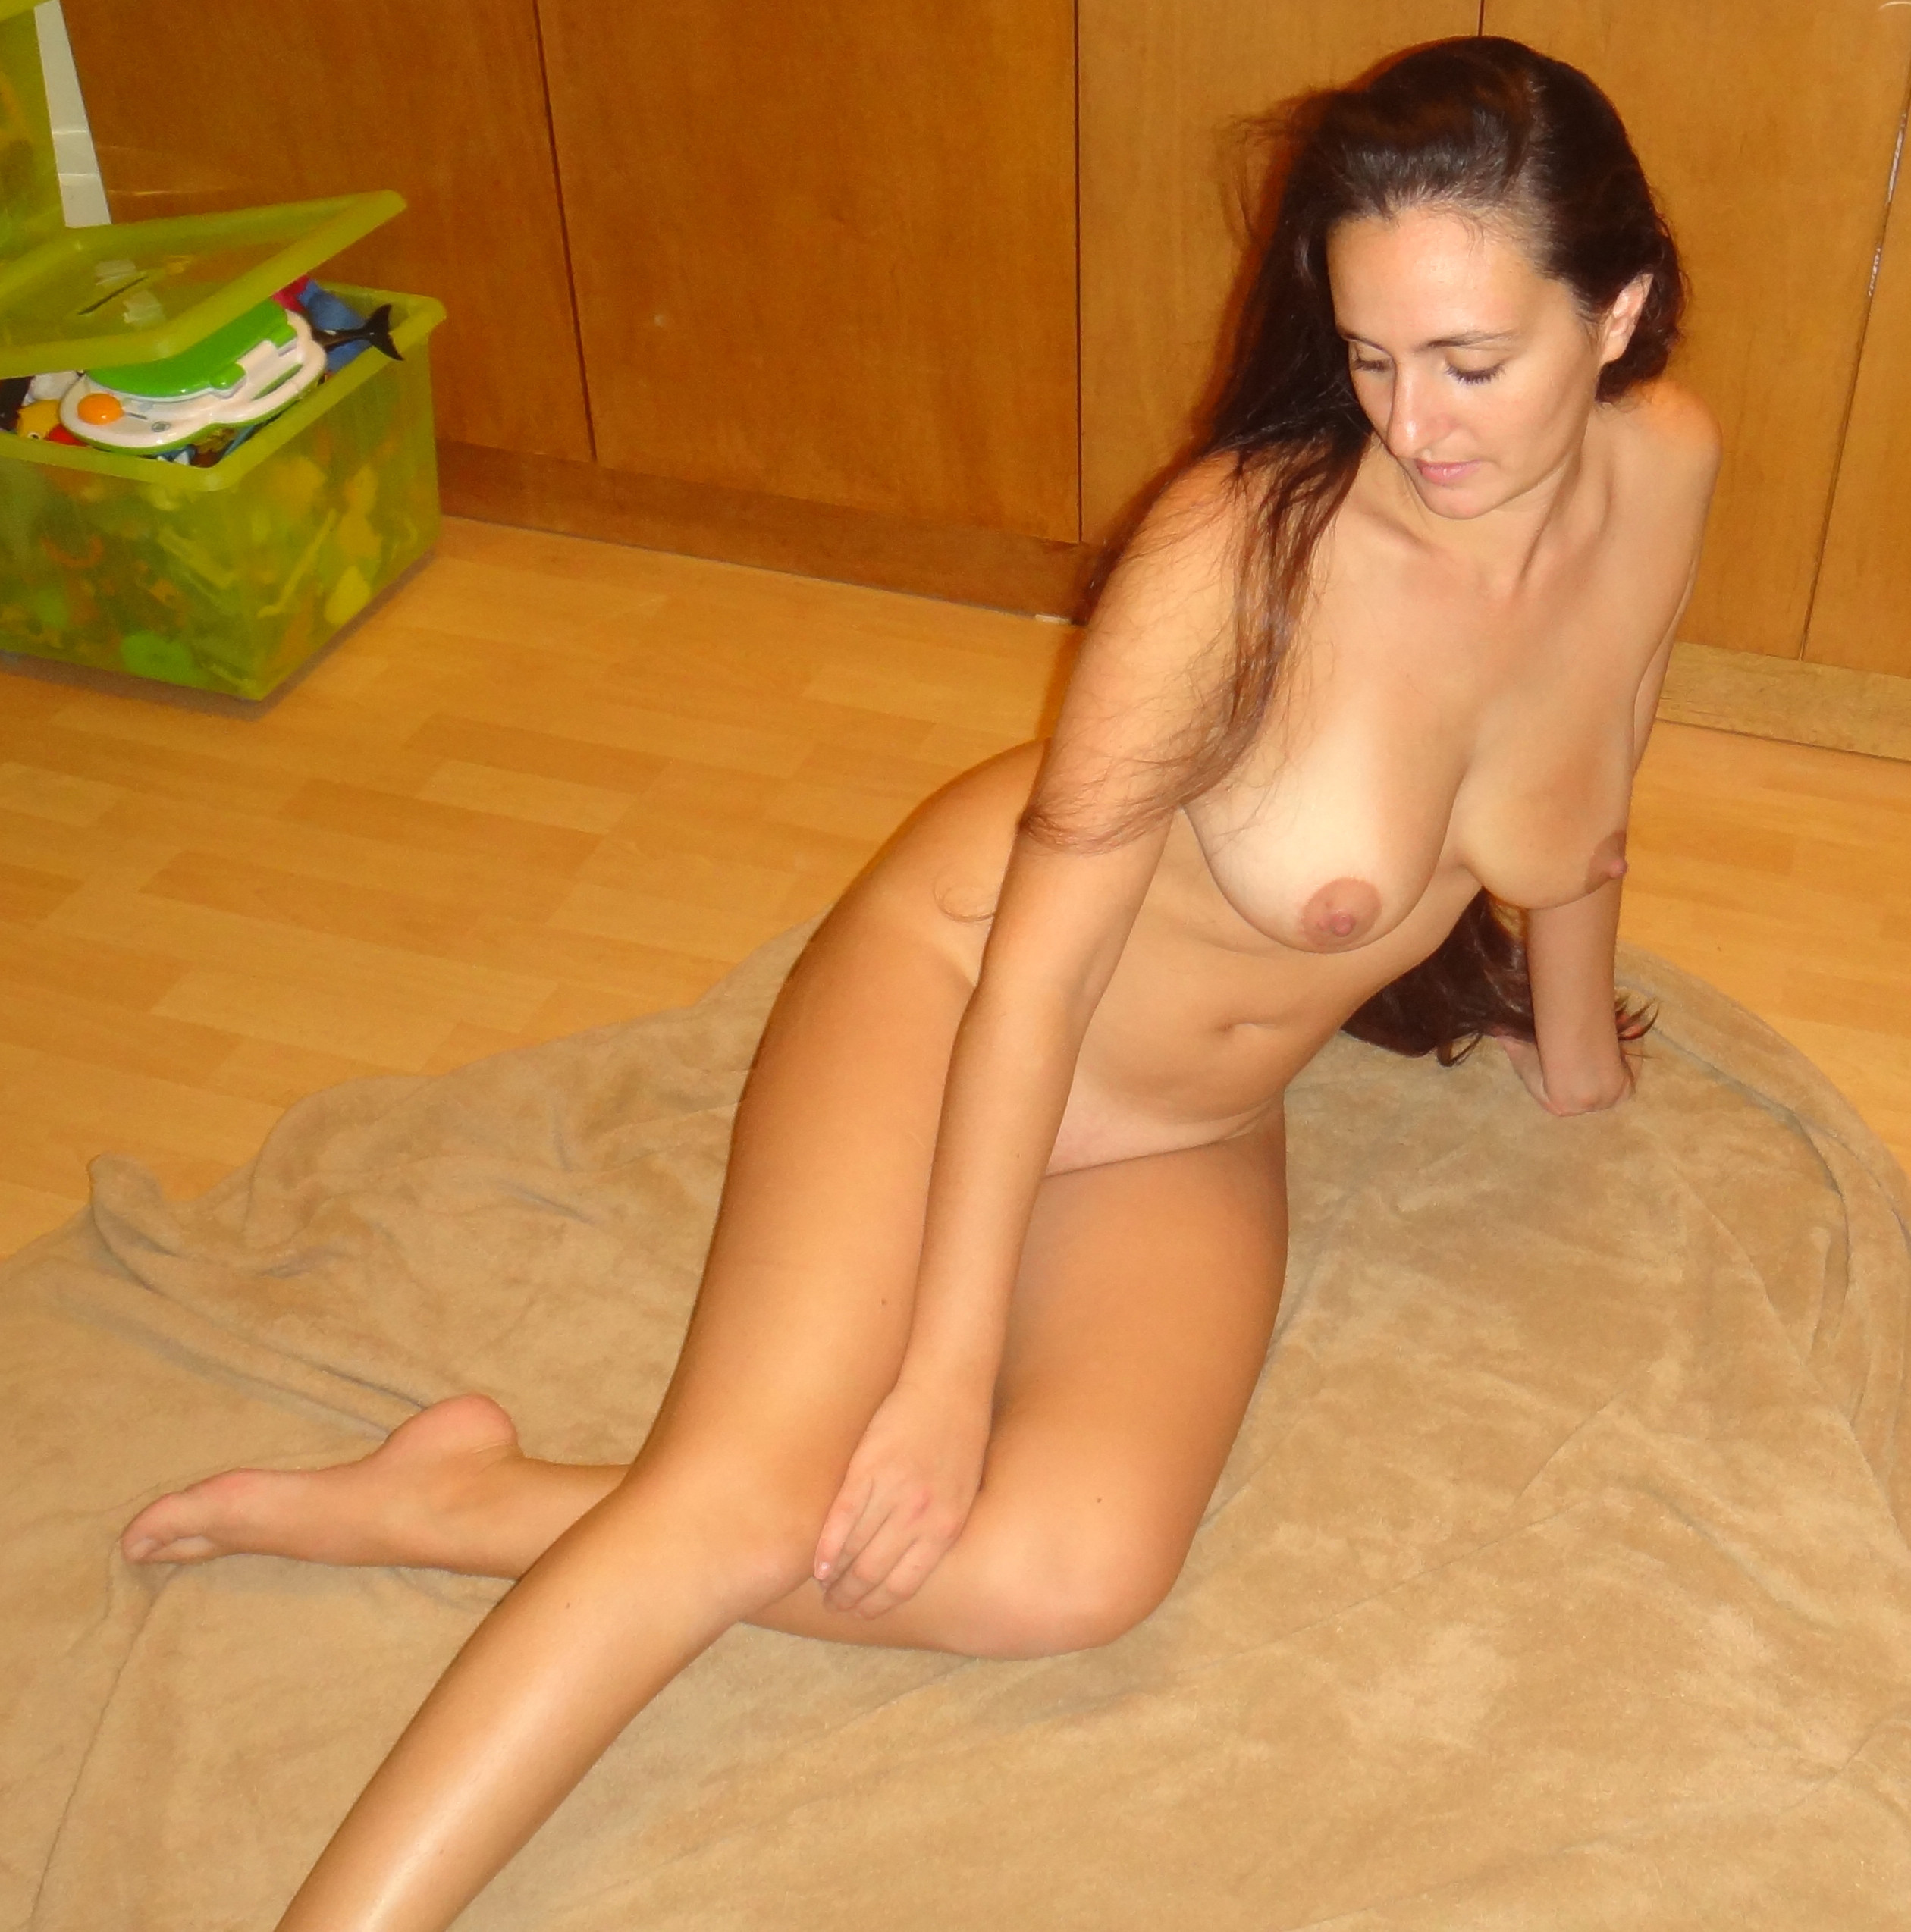 Pictures of naked hungarian girls final